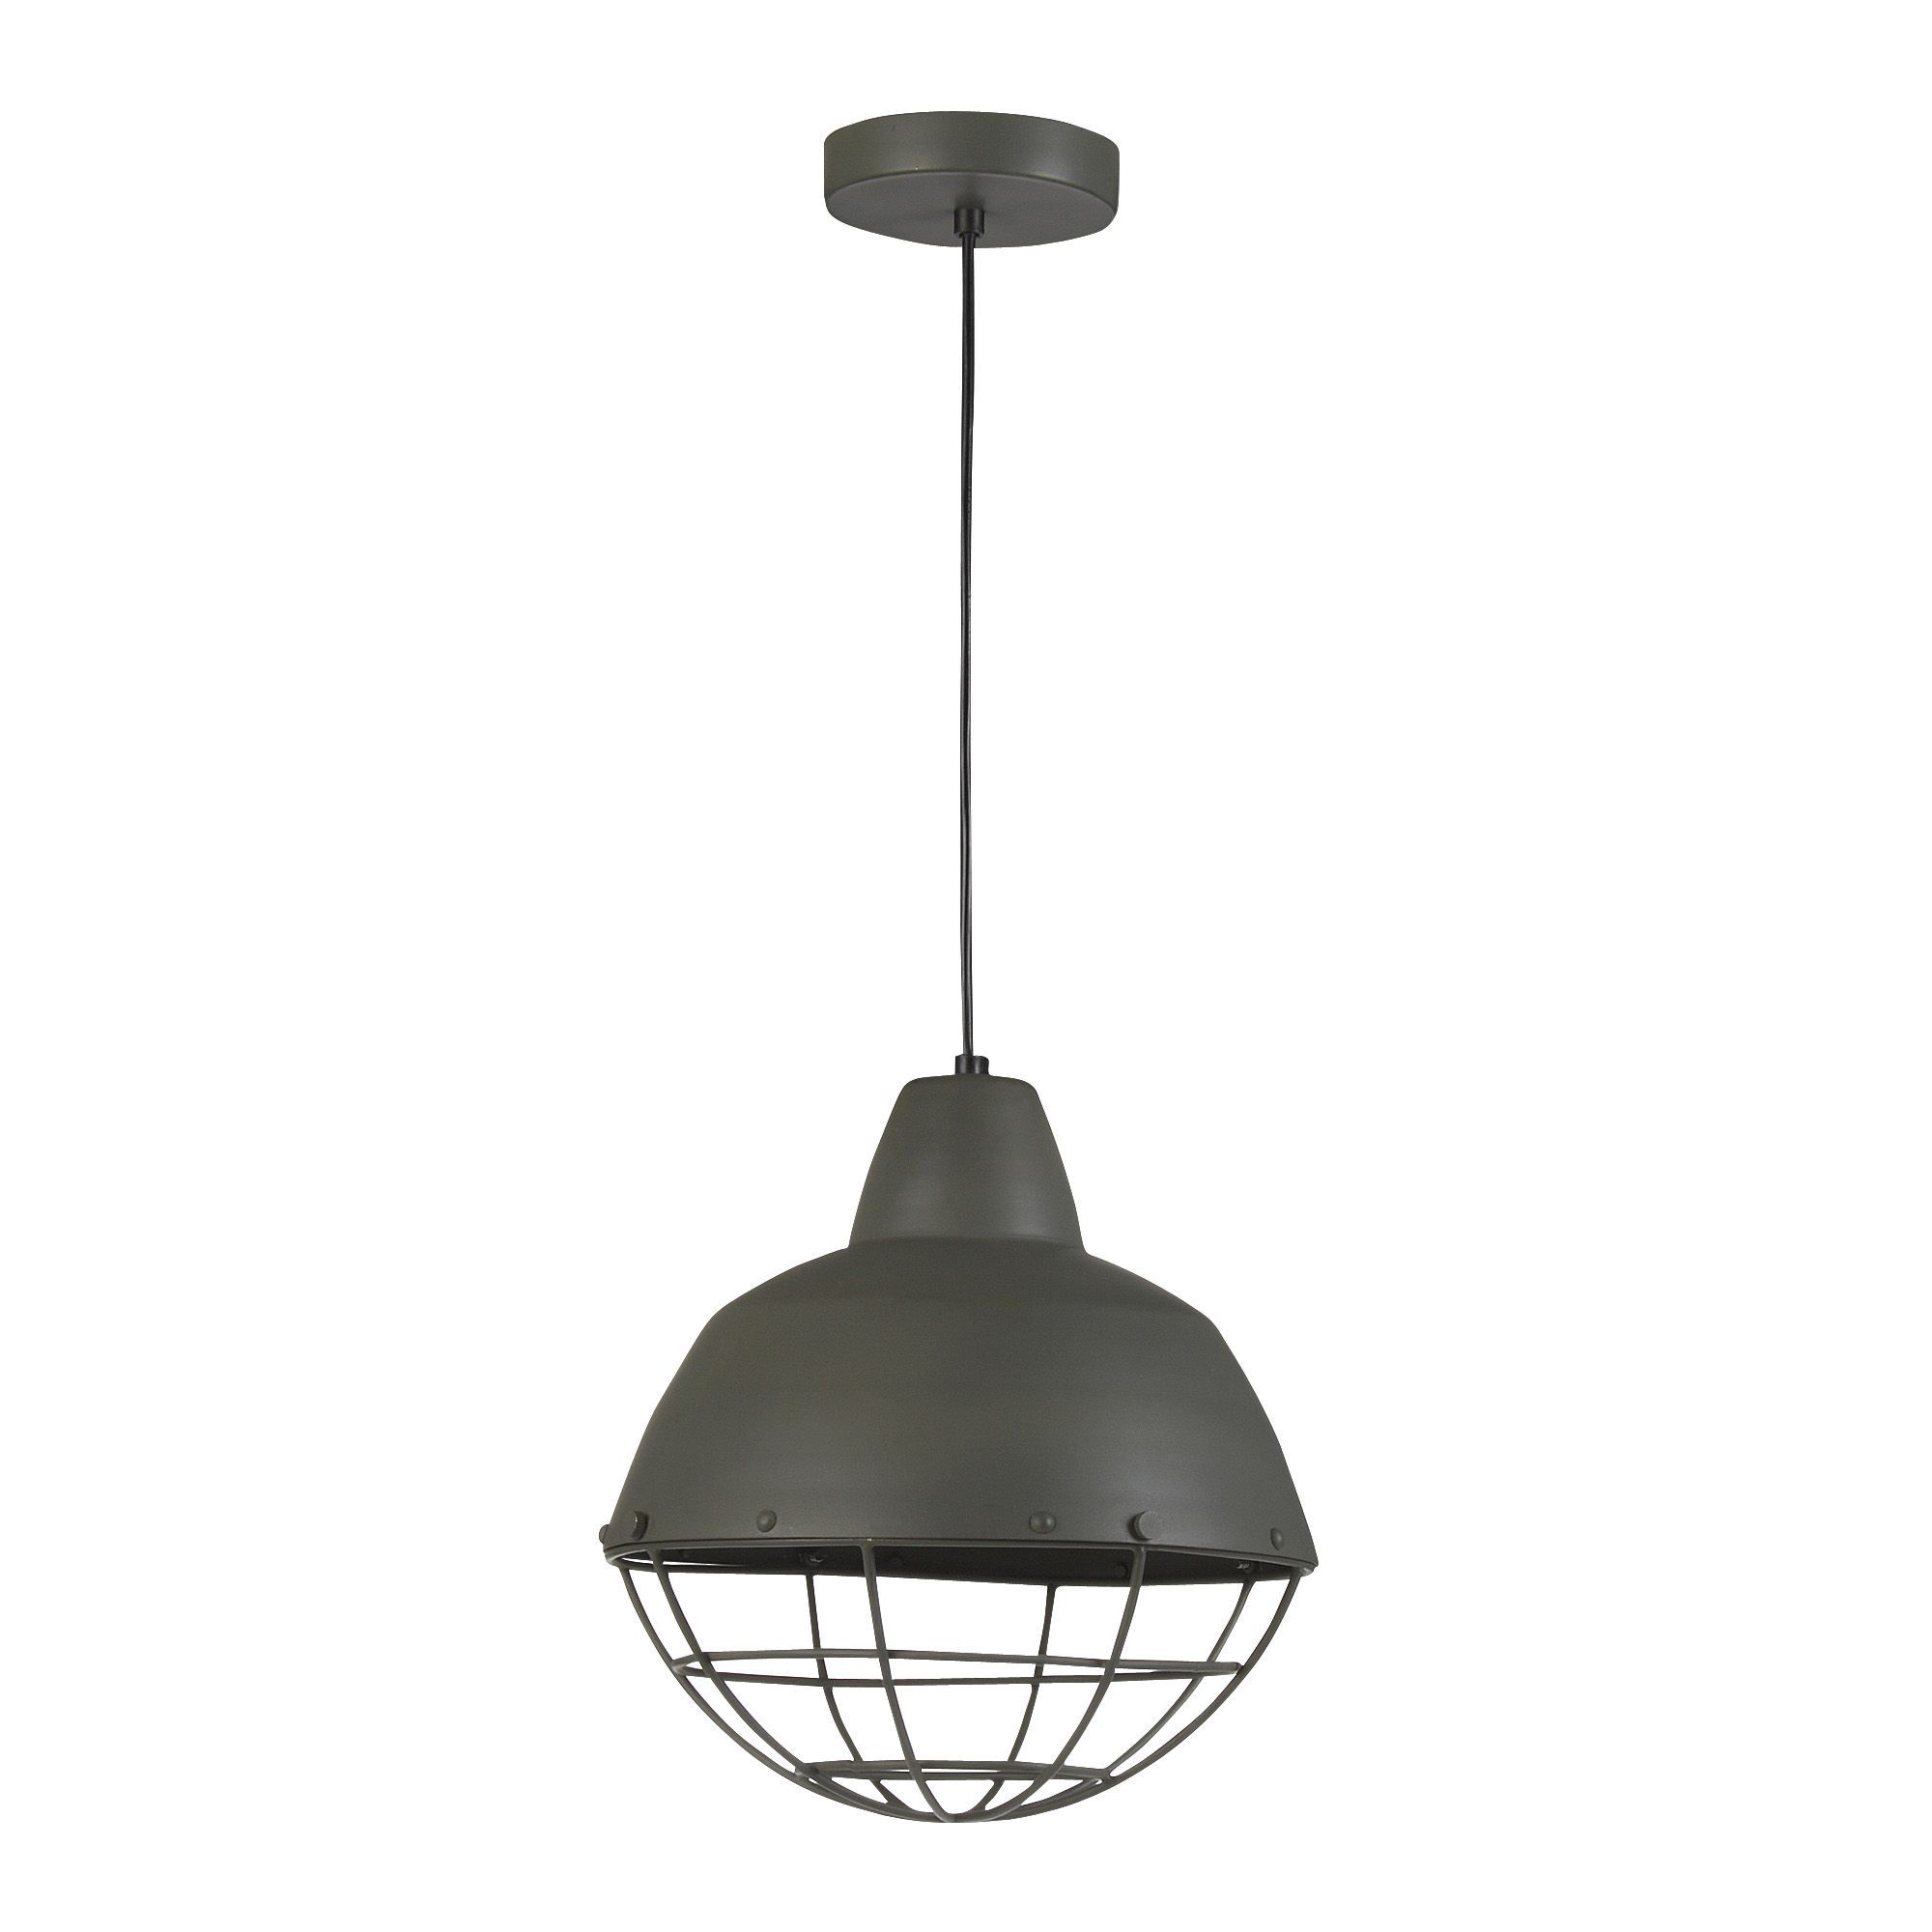 Suspension Moderne Salon Suspension Moderne Alu Gris D27cm Gris Phare Les